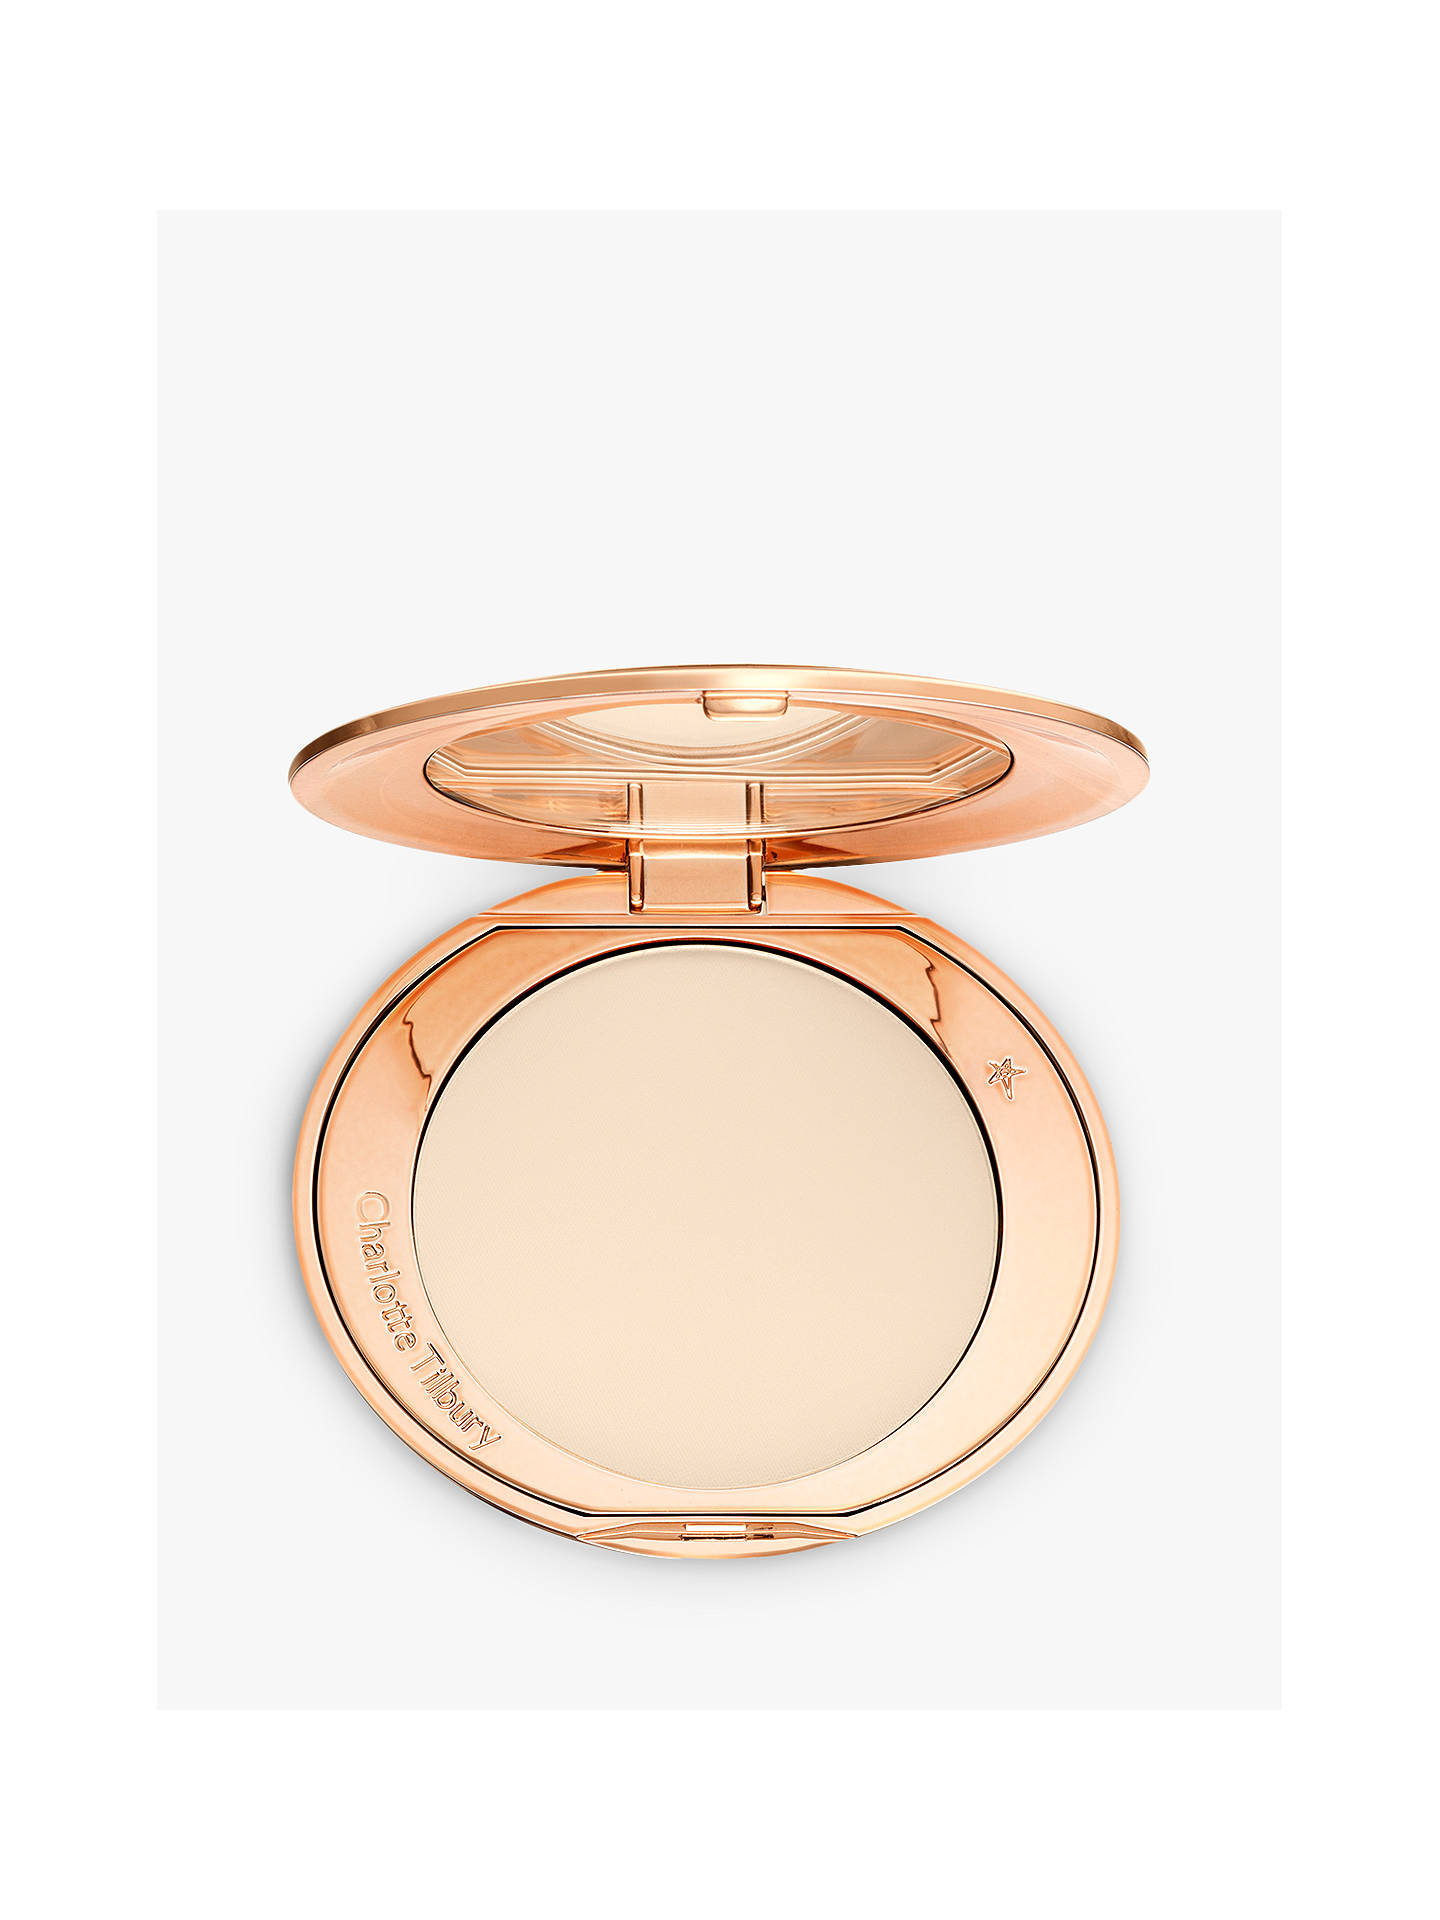 BuyCharlotte Tilbury Air Brush Flawless Finish Skin Perfecting Micro-Powder, 1 Fair Online at johnlewis.com